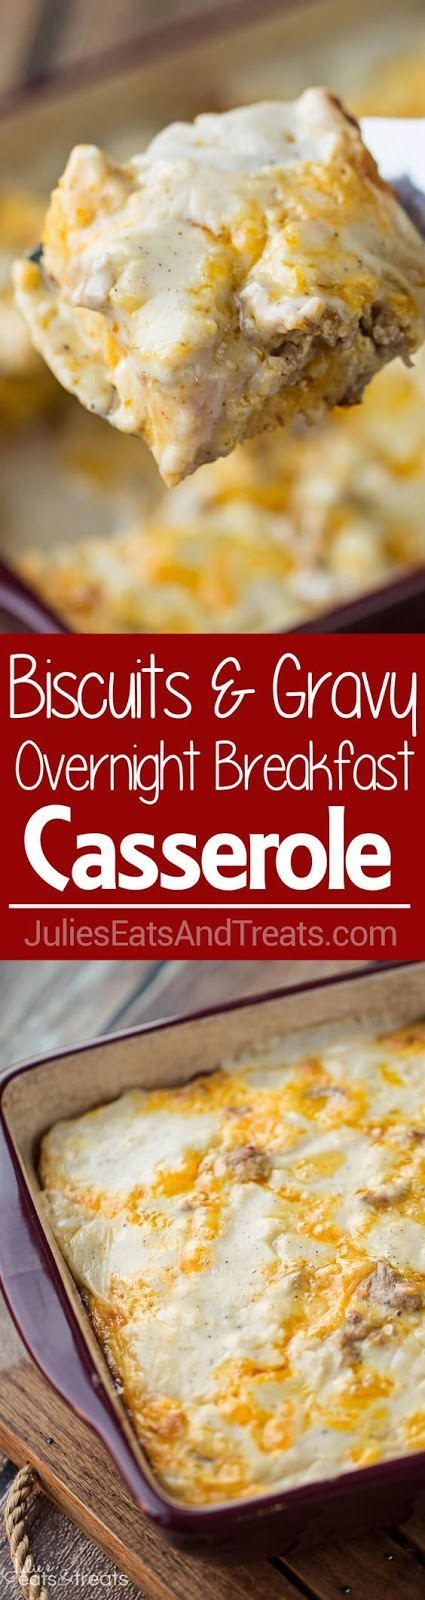 Biscuits and Gravy Overnight Breakfast Casserole